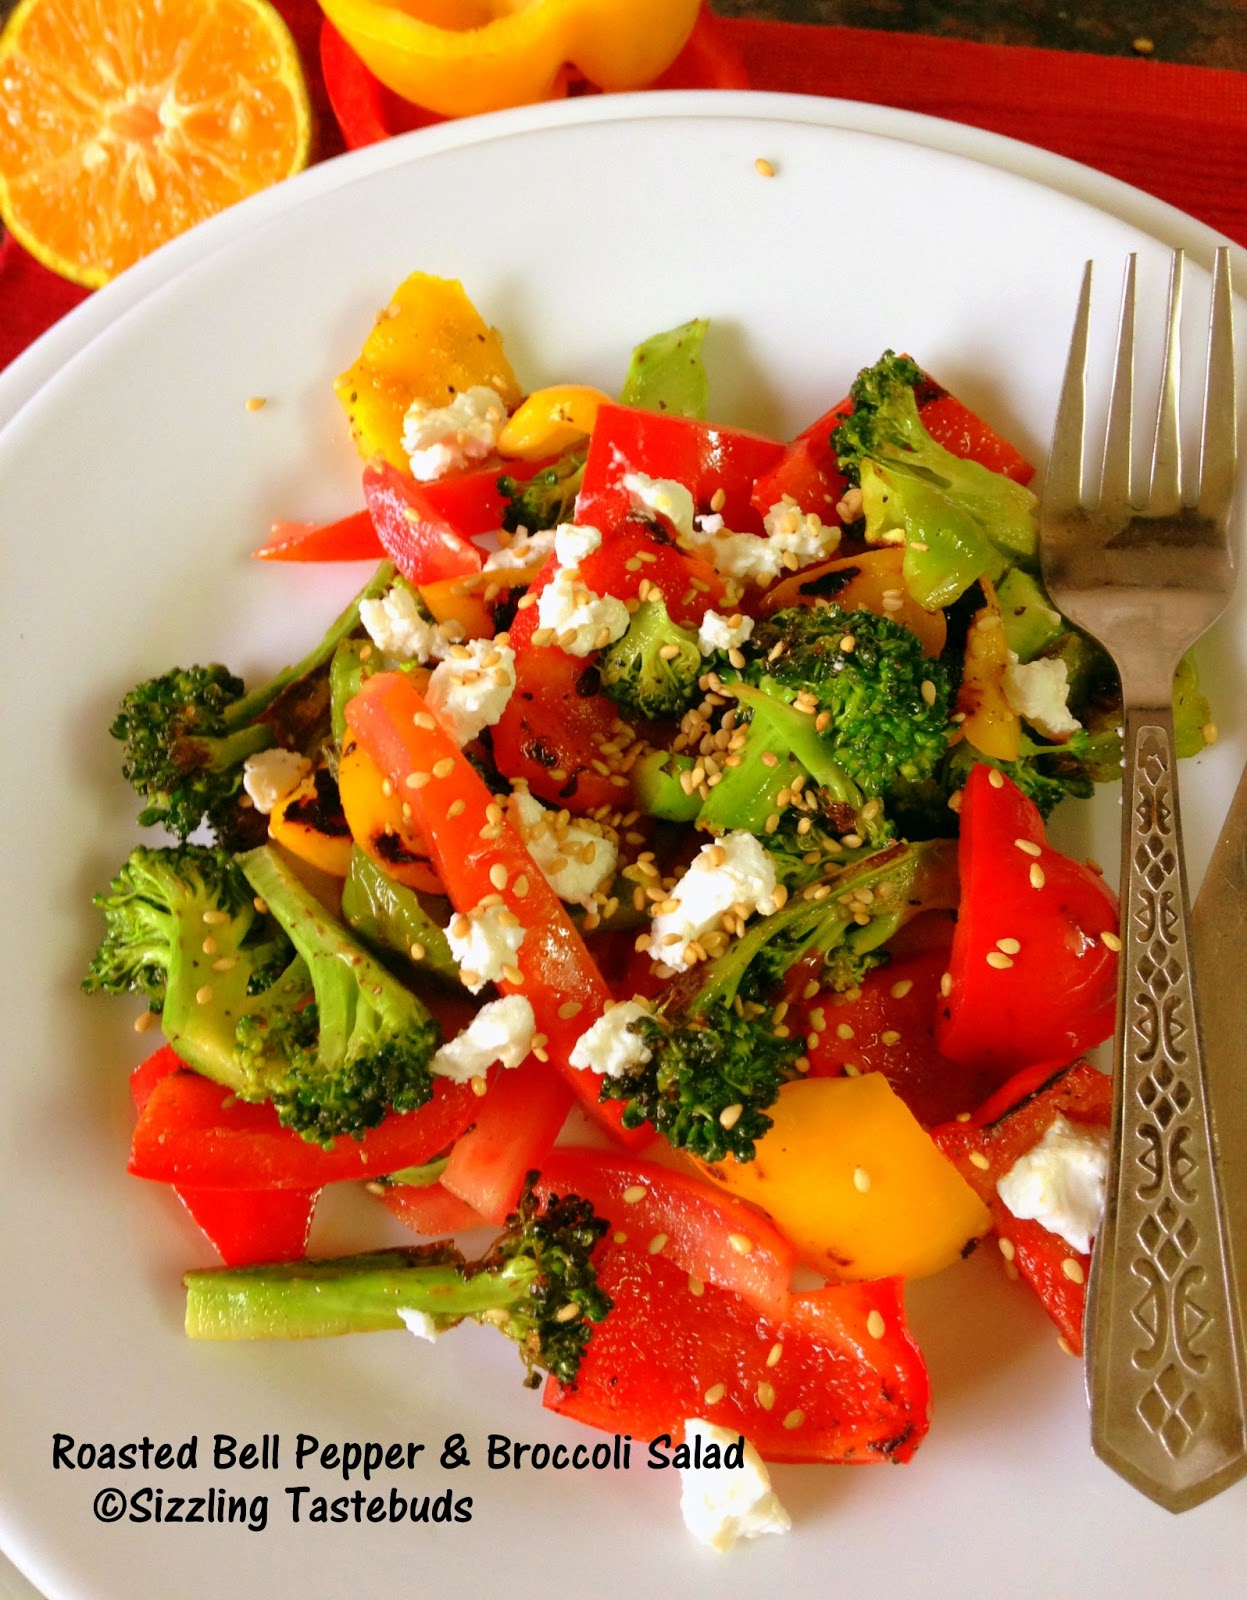 Broccoli and Roasted Pepper Salad